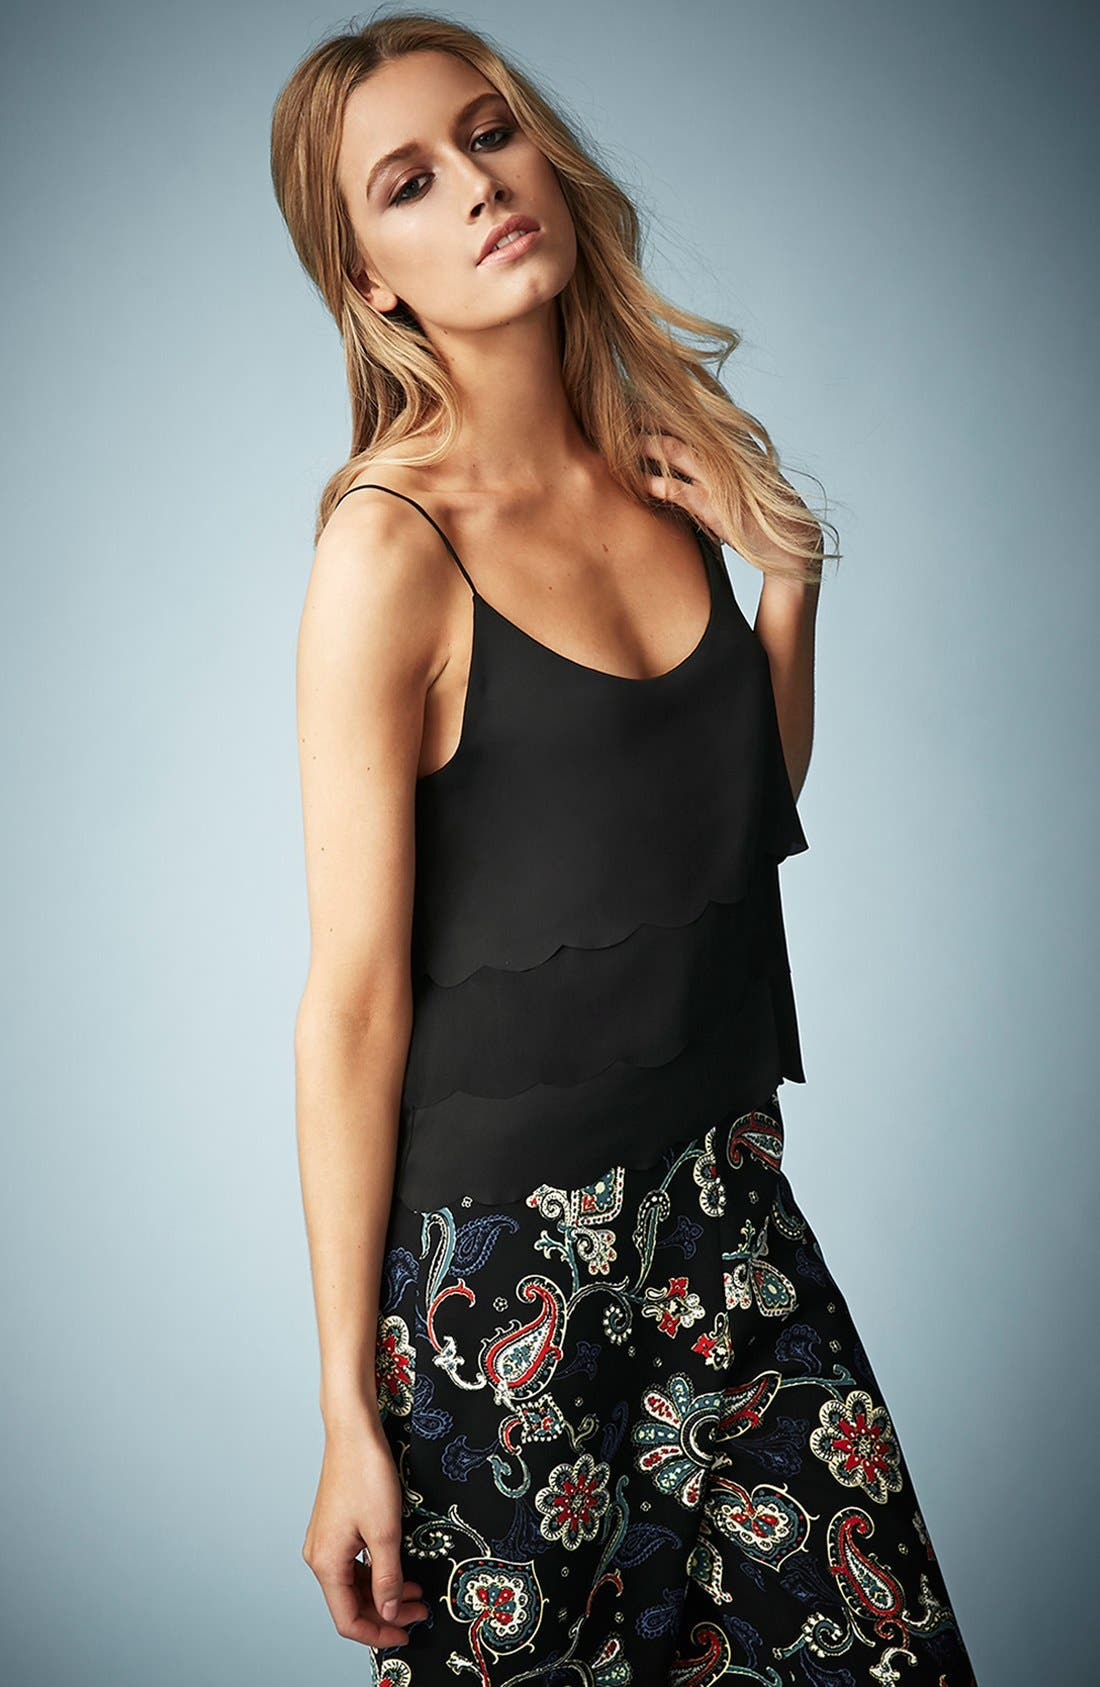 TOPSHOP,                             Kate Moss for Topshop Scalloped Camisole,                             Main thumbnail 1, color,                             001